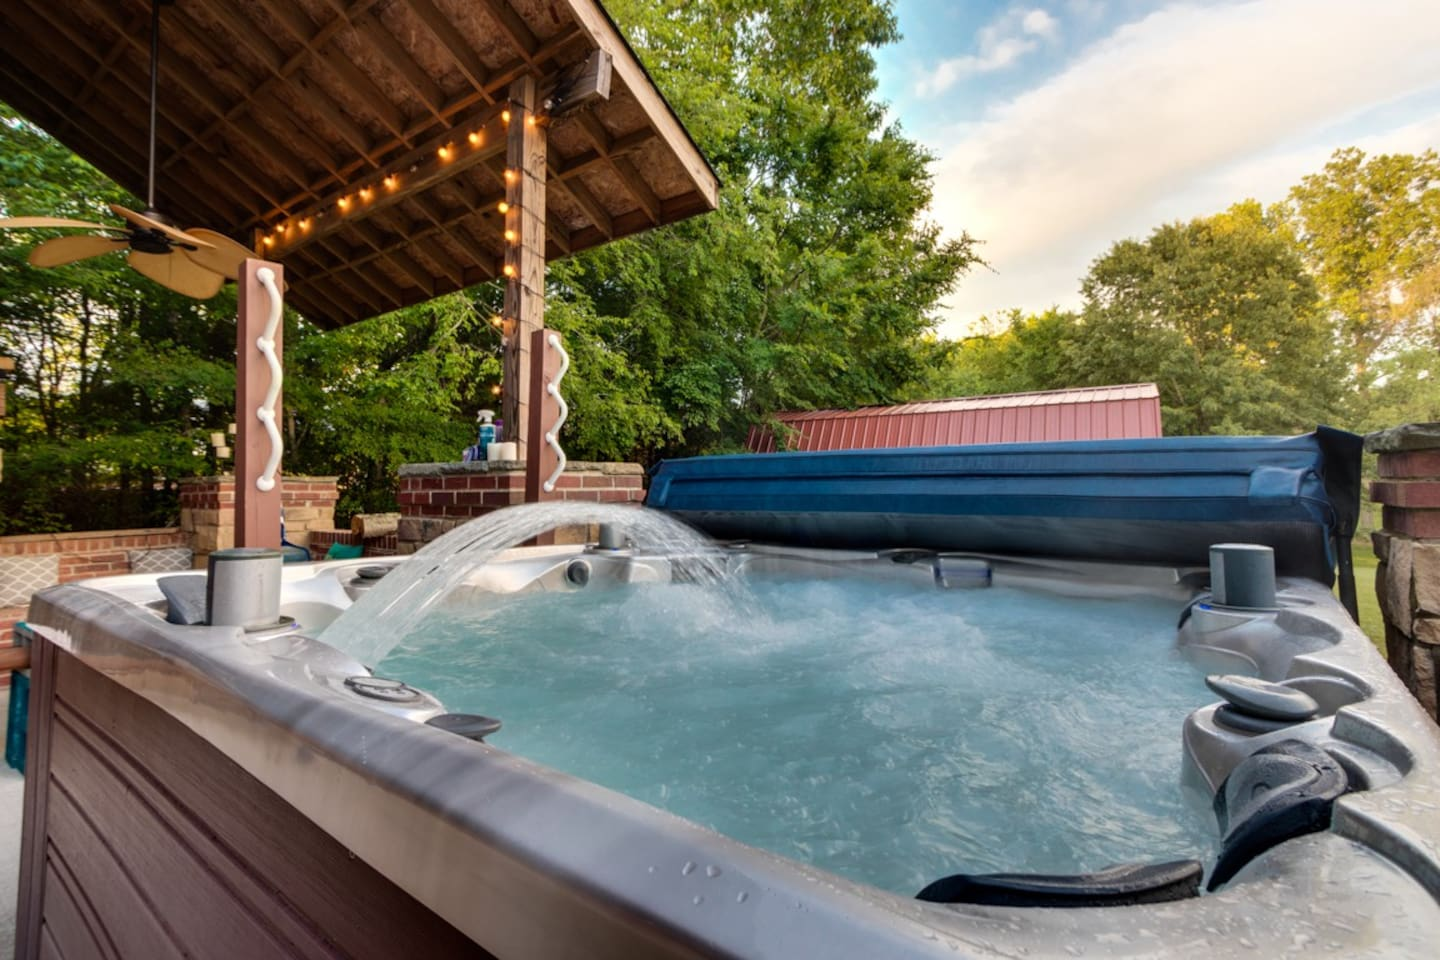 Soak your cares away in this 6 person hot tub.  The jets on this are insane!